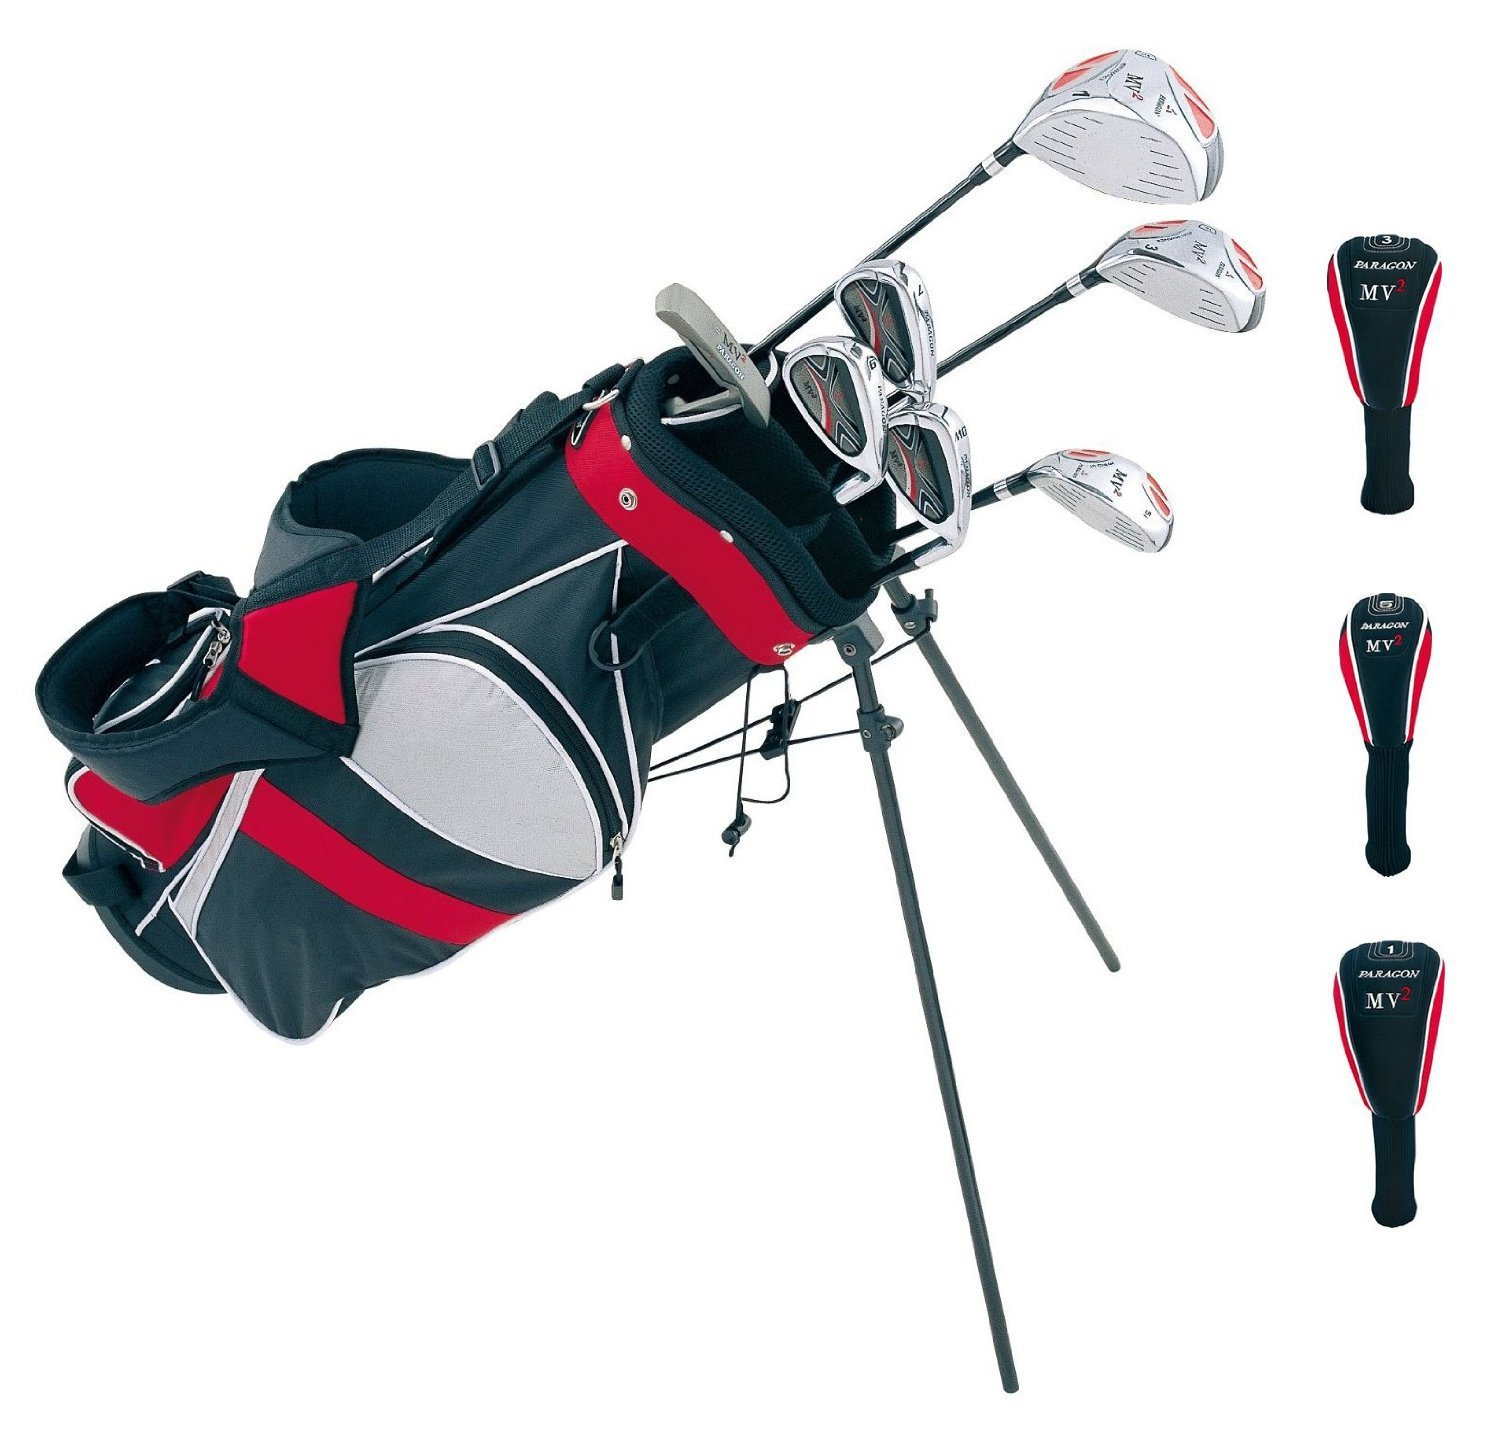 Paragon Complete Golf Club Sets